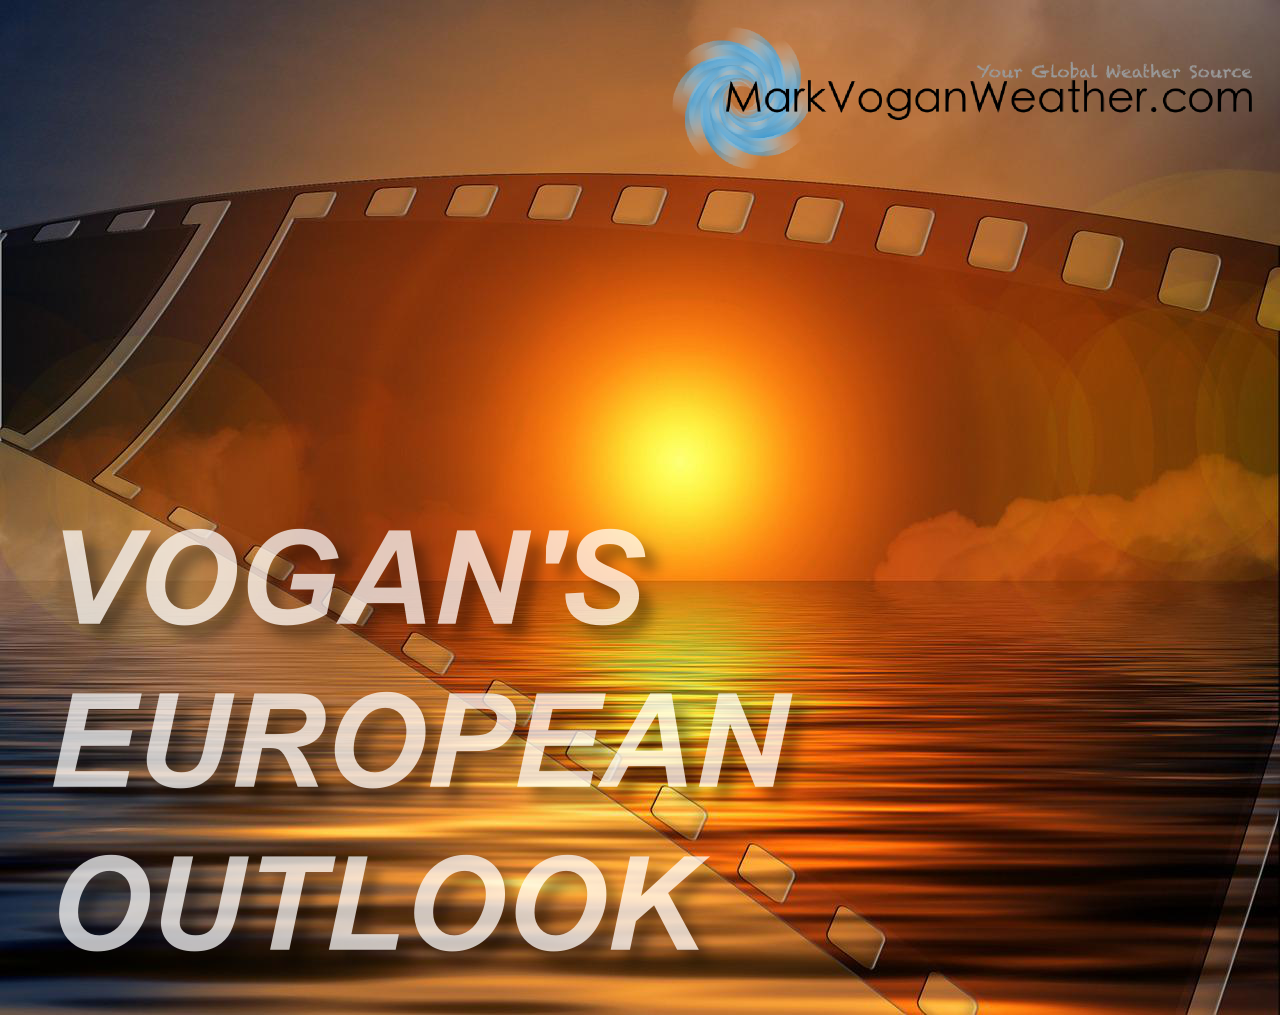 MON 12 MAY: VOGAN'S EUROPEAN OUTLOOK